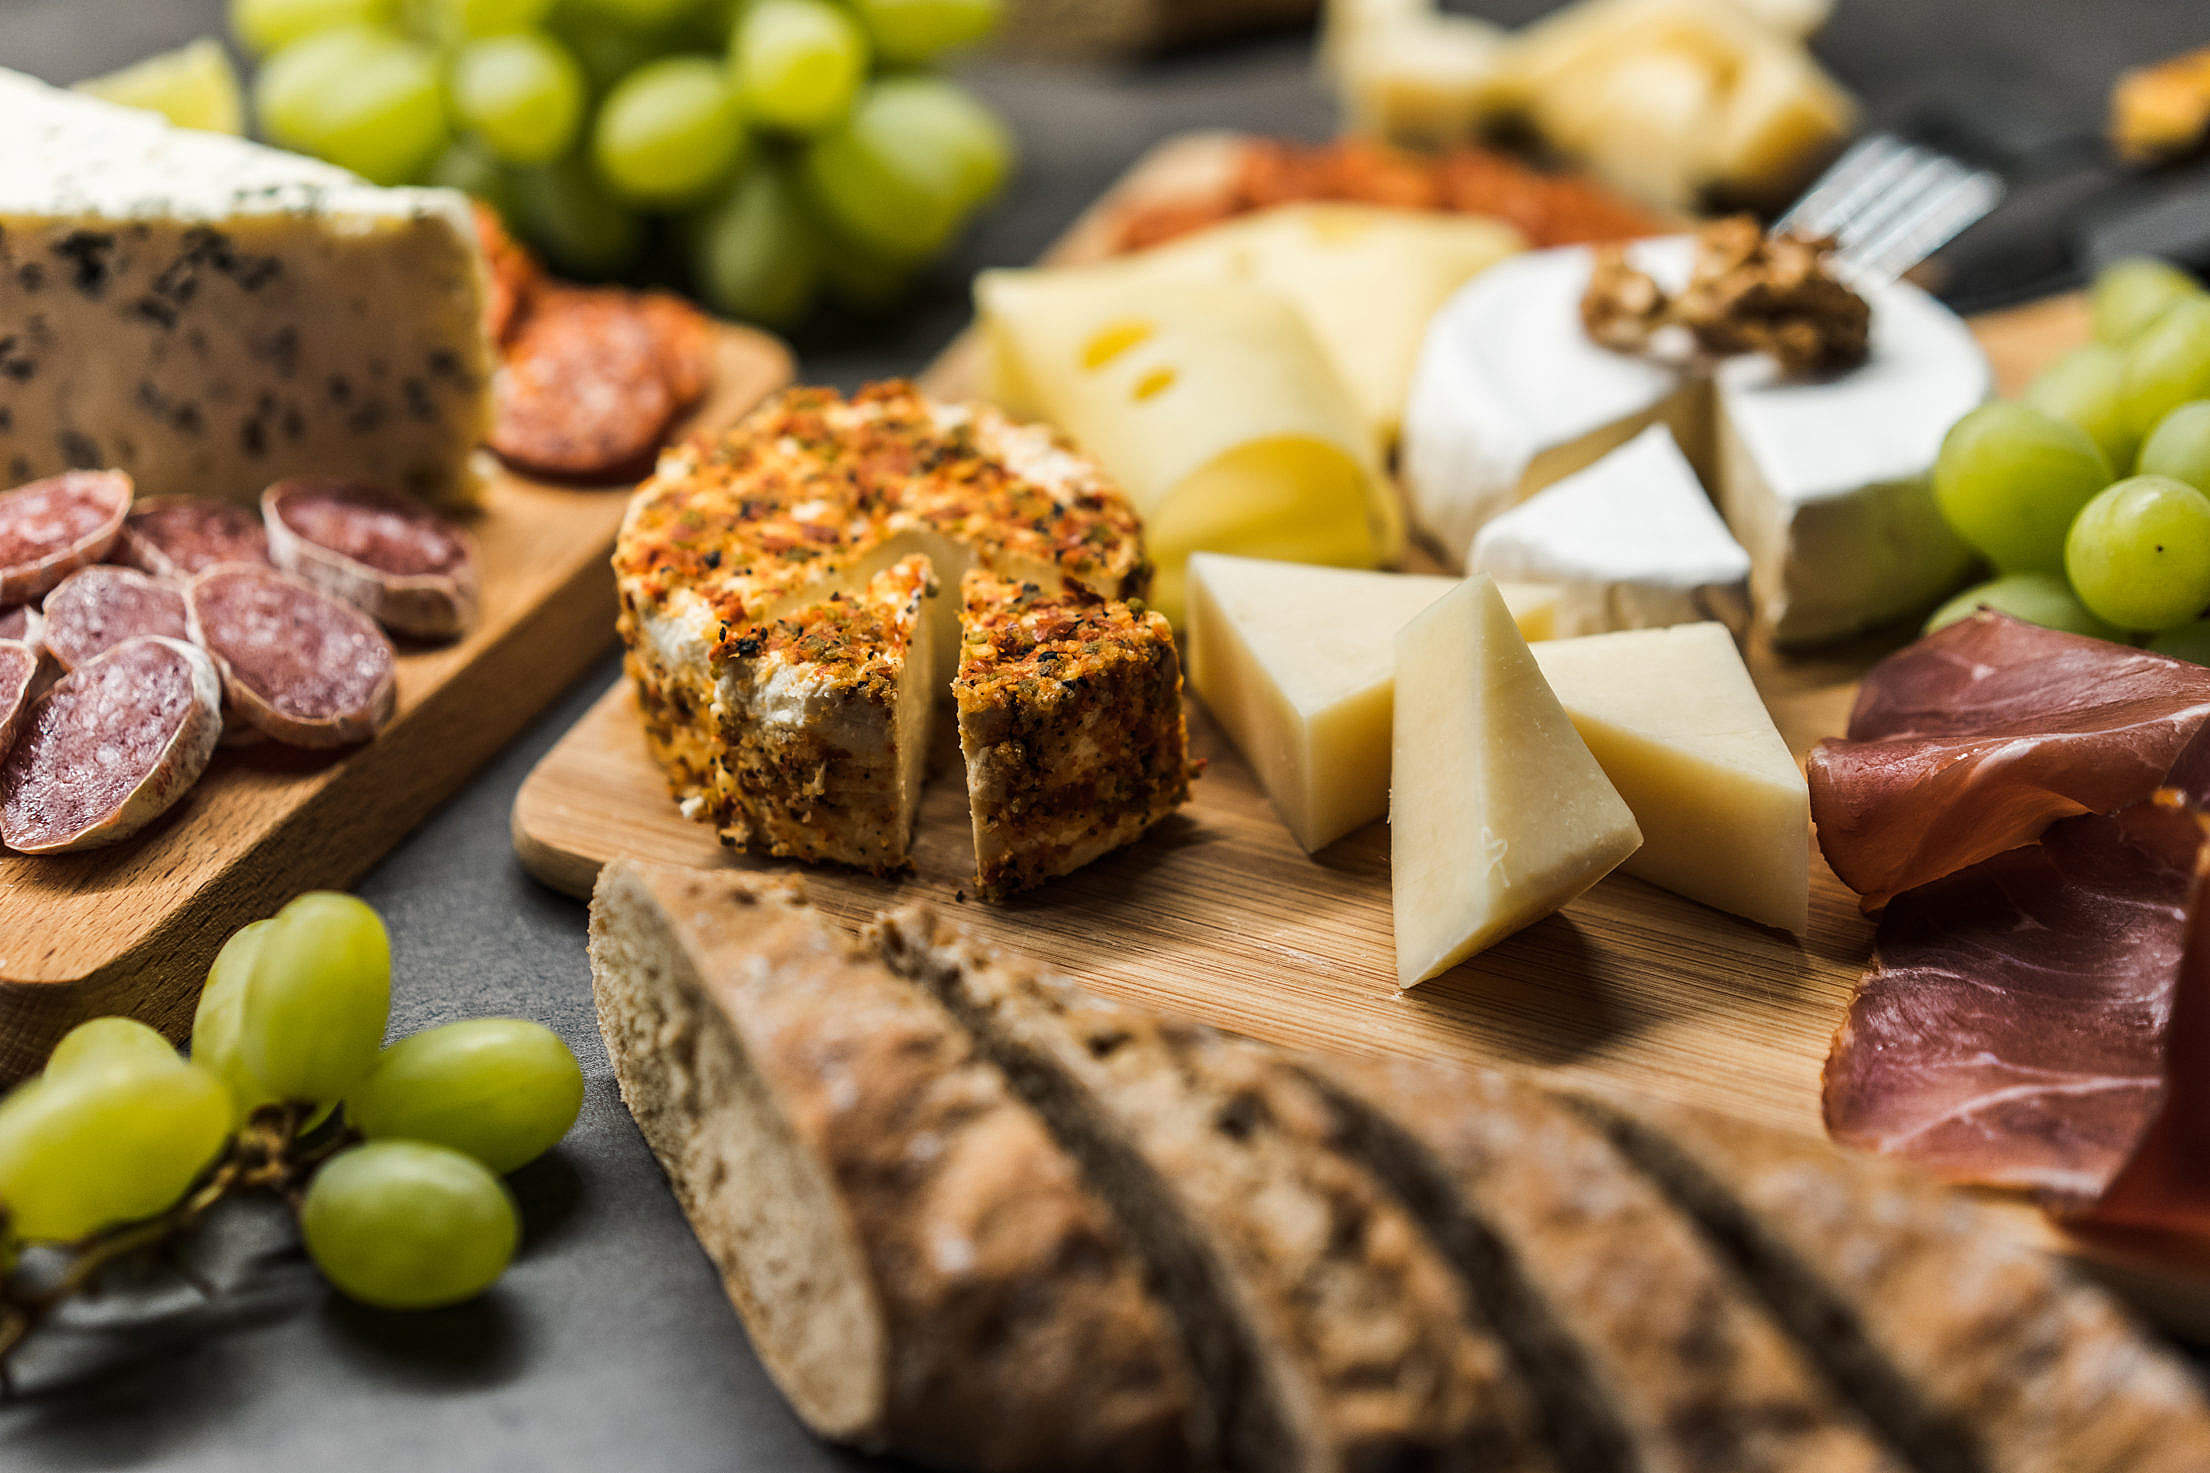 Cheese Plate Close Up Free Stock Photo